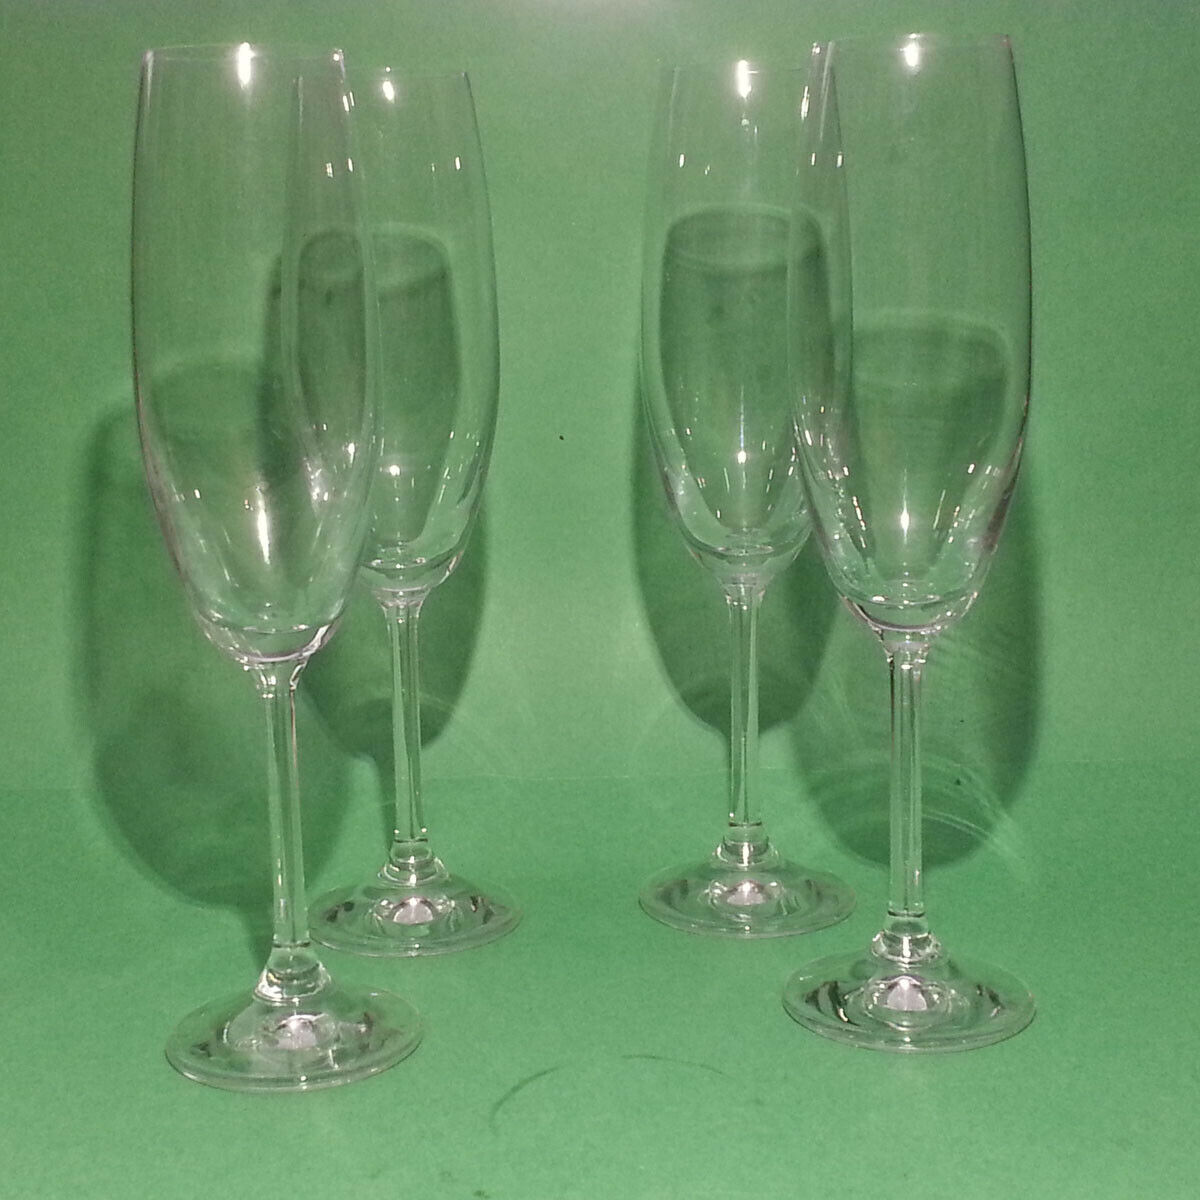 "Sale $26.95 https://ebay.to/2Np6LNW  #crystal #Champagne #flute 8 oz 9"" tall, Set of 4 pic.twitter.com/38WfYFcptR"